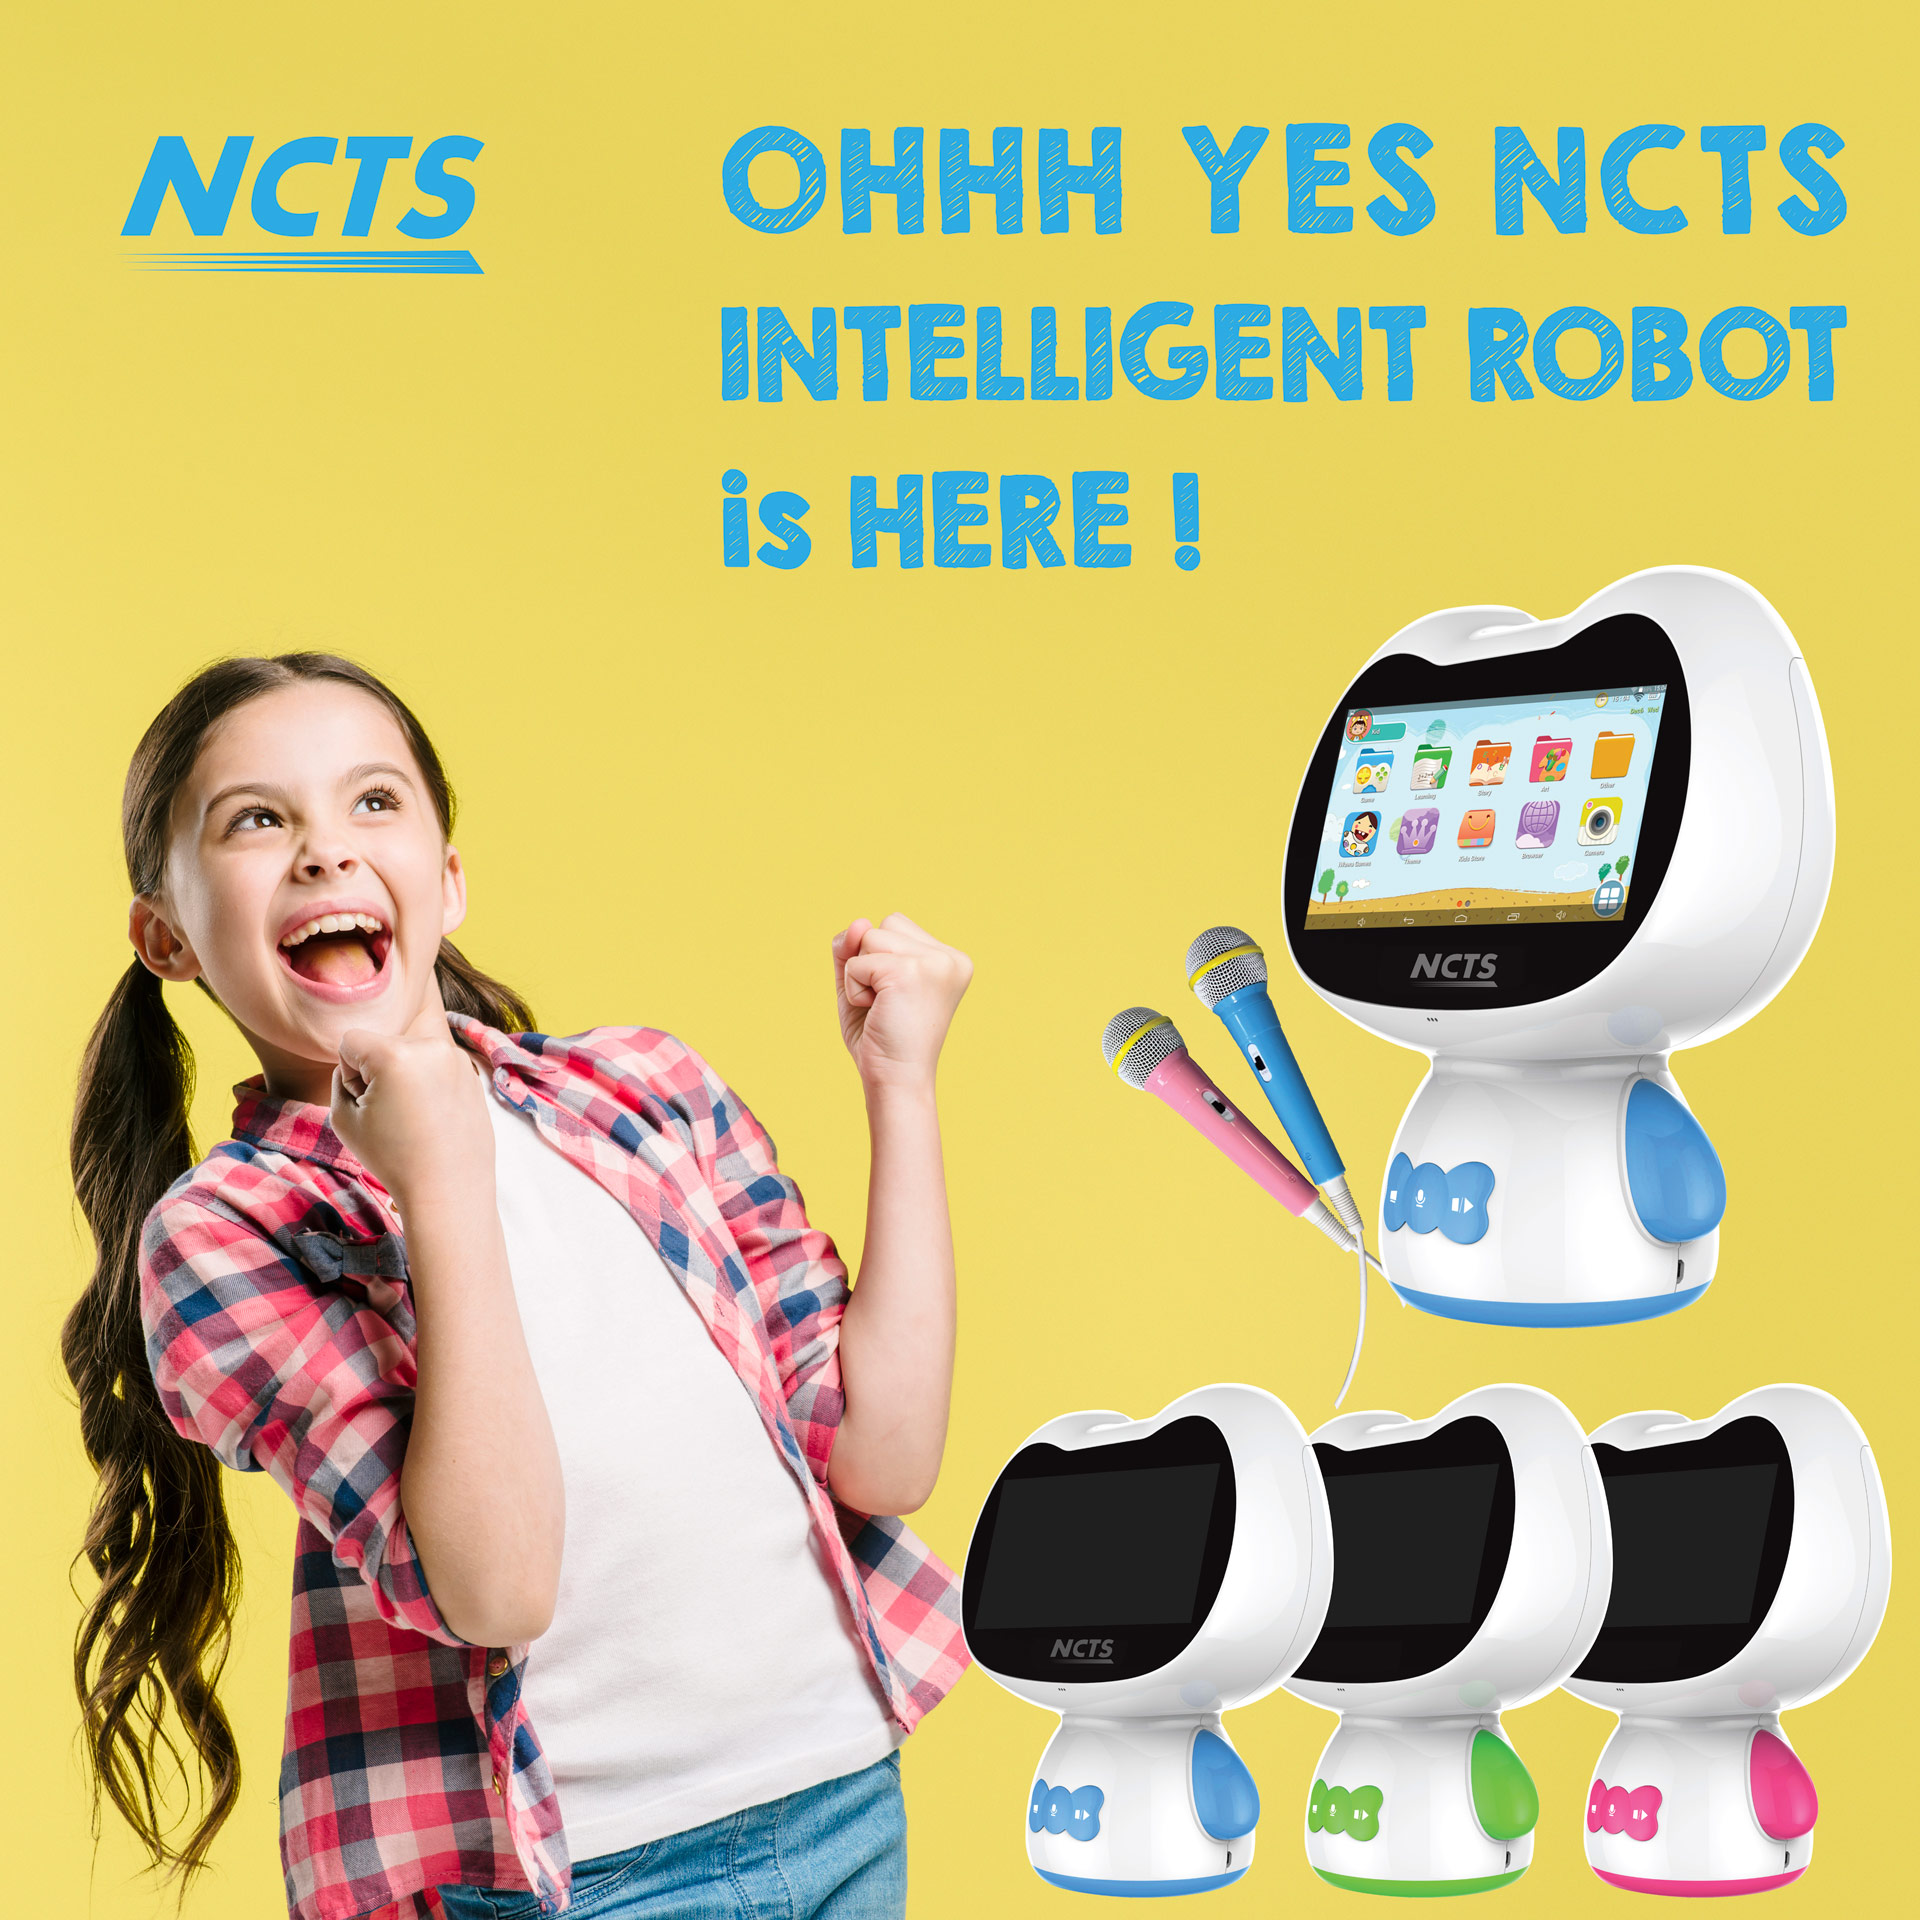 NCTS INTELLIGENT ROBOT ROBO1